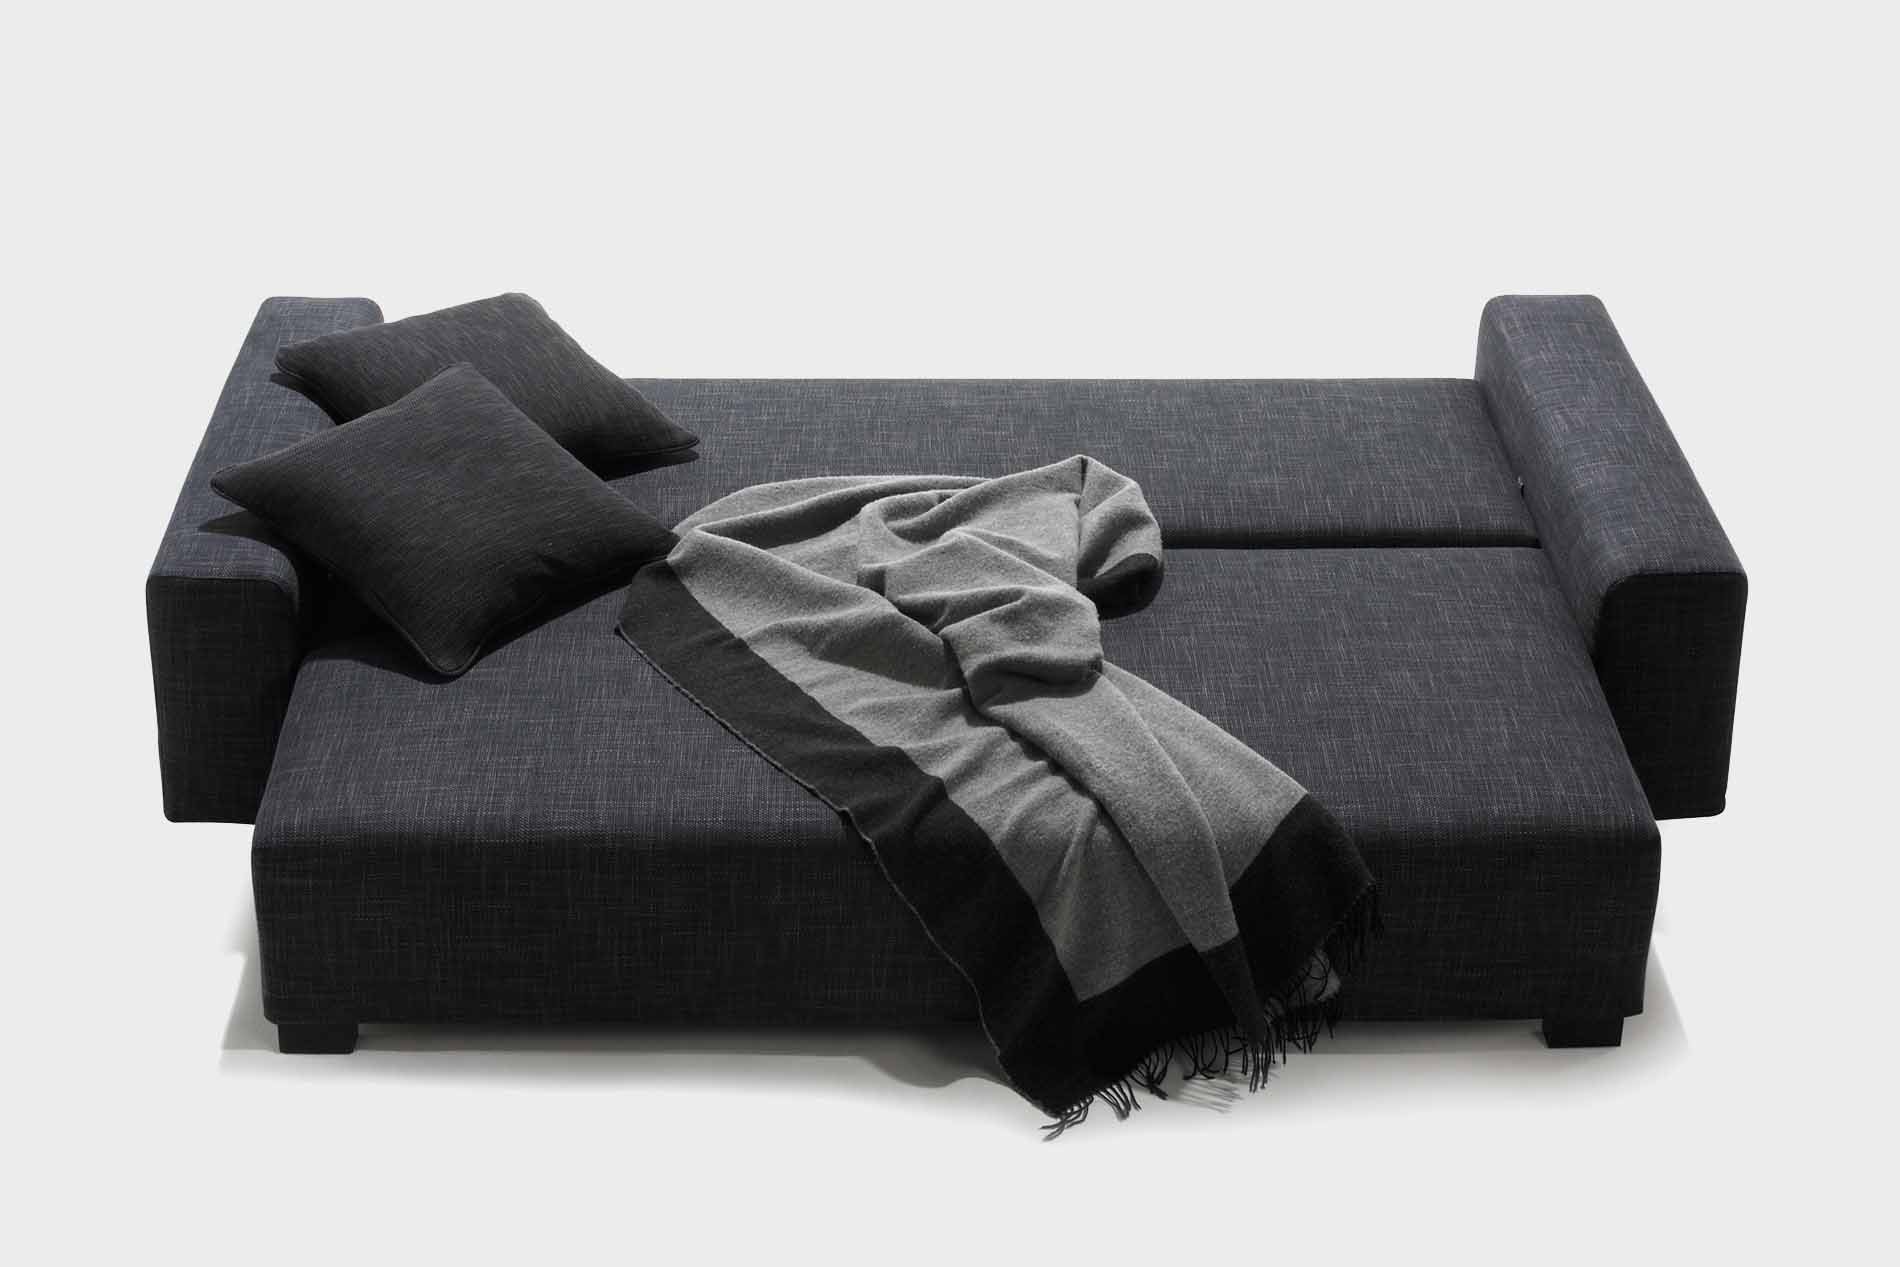 schlafsofa pallini von signet sofa nach ma mit bett. Black Bedroom Furniture Sets. Home Design Ideas